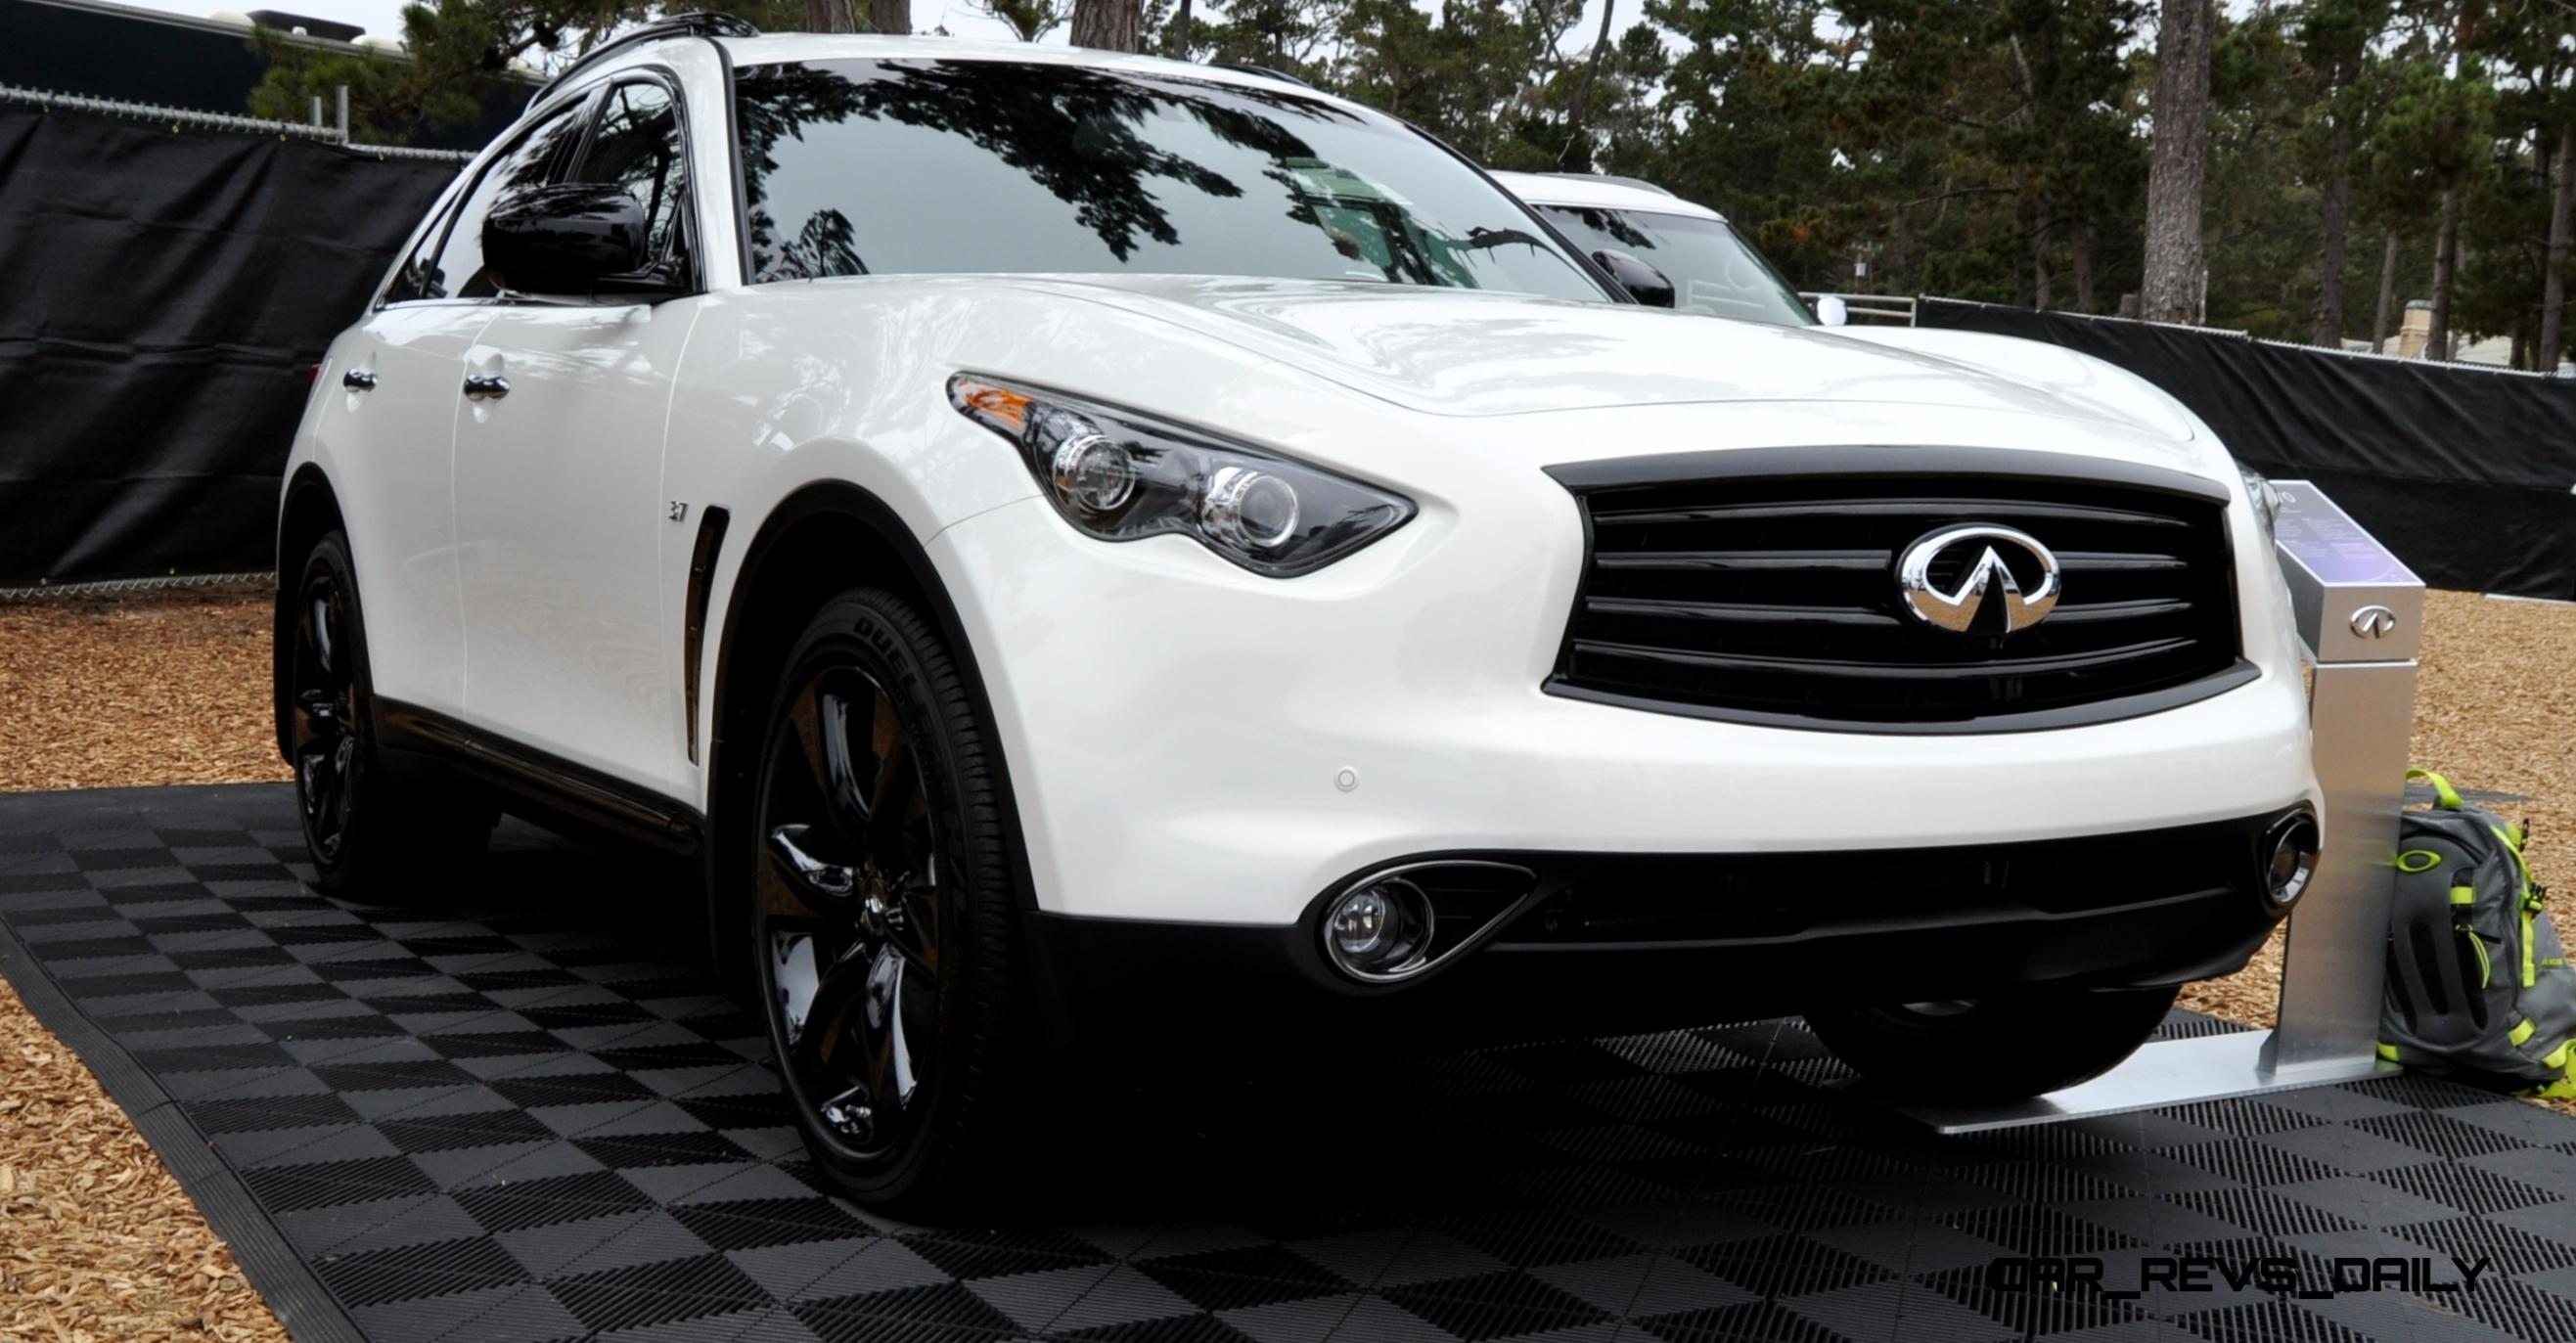 2015 infiniti qx70s brings new sport package with black exterior and cooled front seats. Black Bedroom Furniture Sets. Home Design Ideas